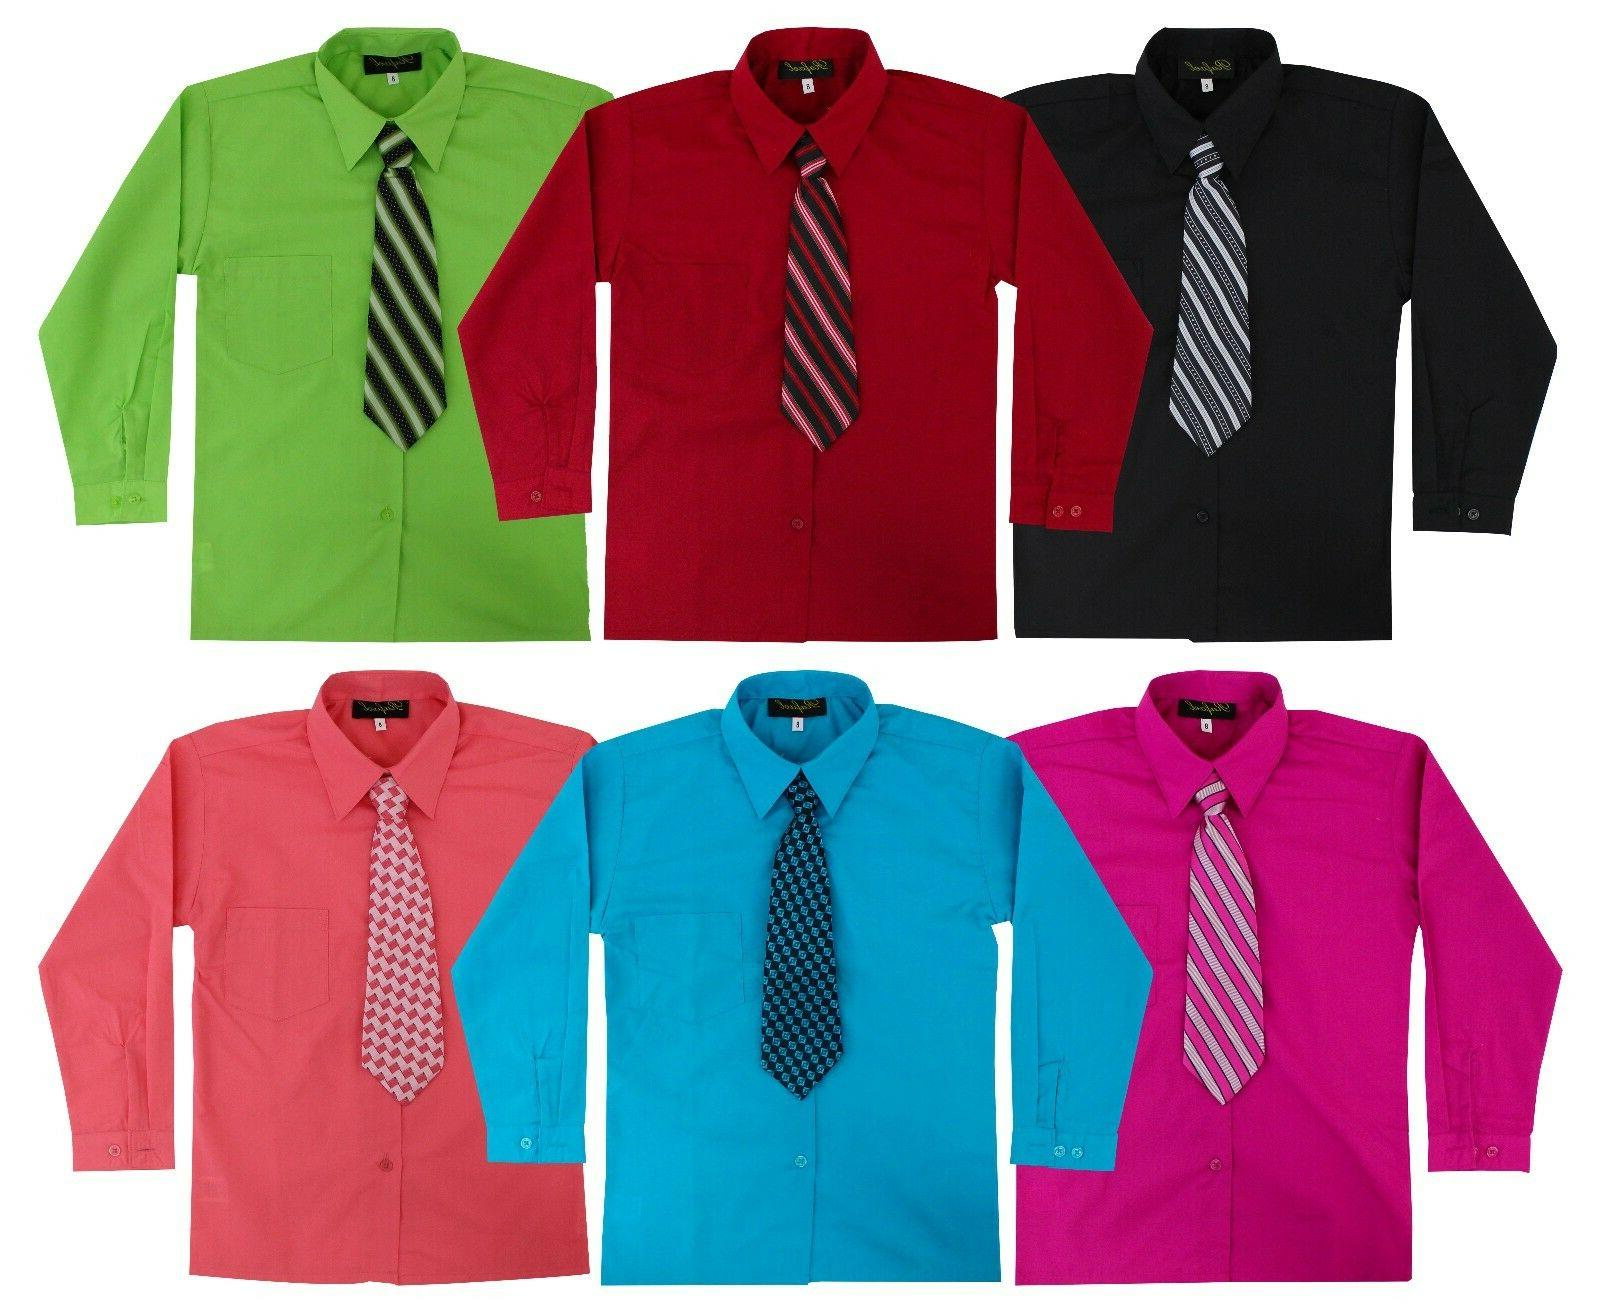 Kids Toddlers Sleeve with Tie Set